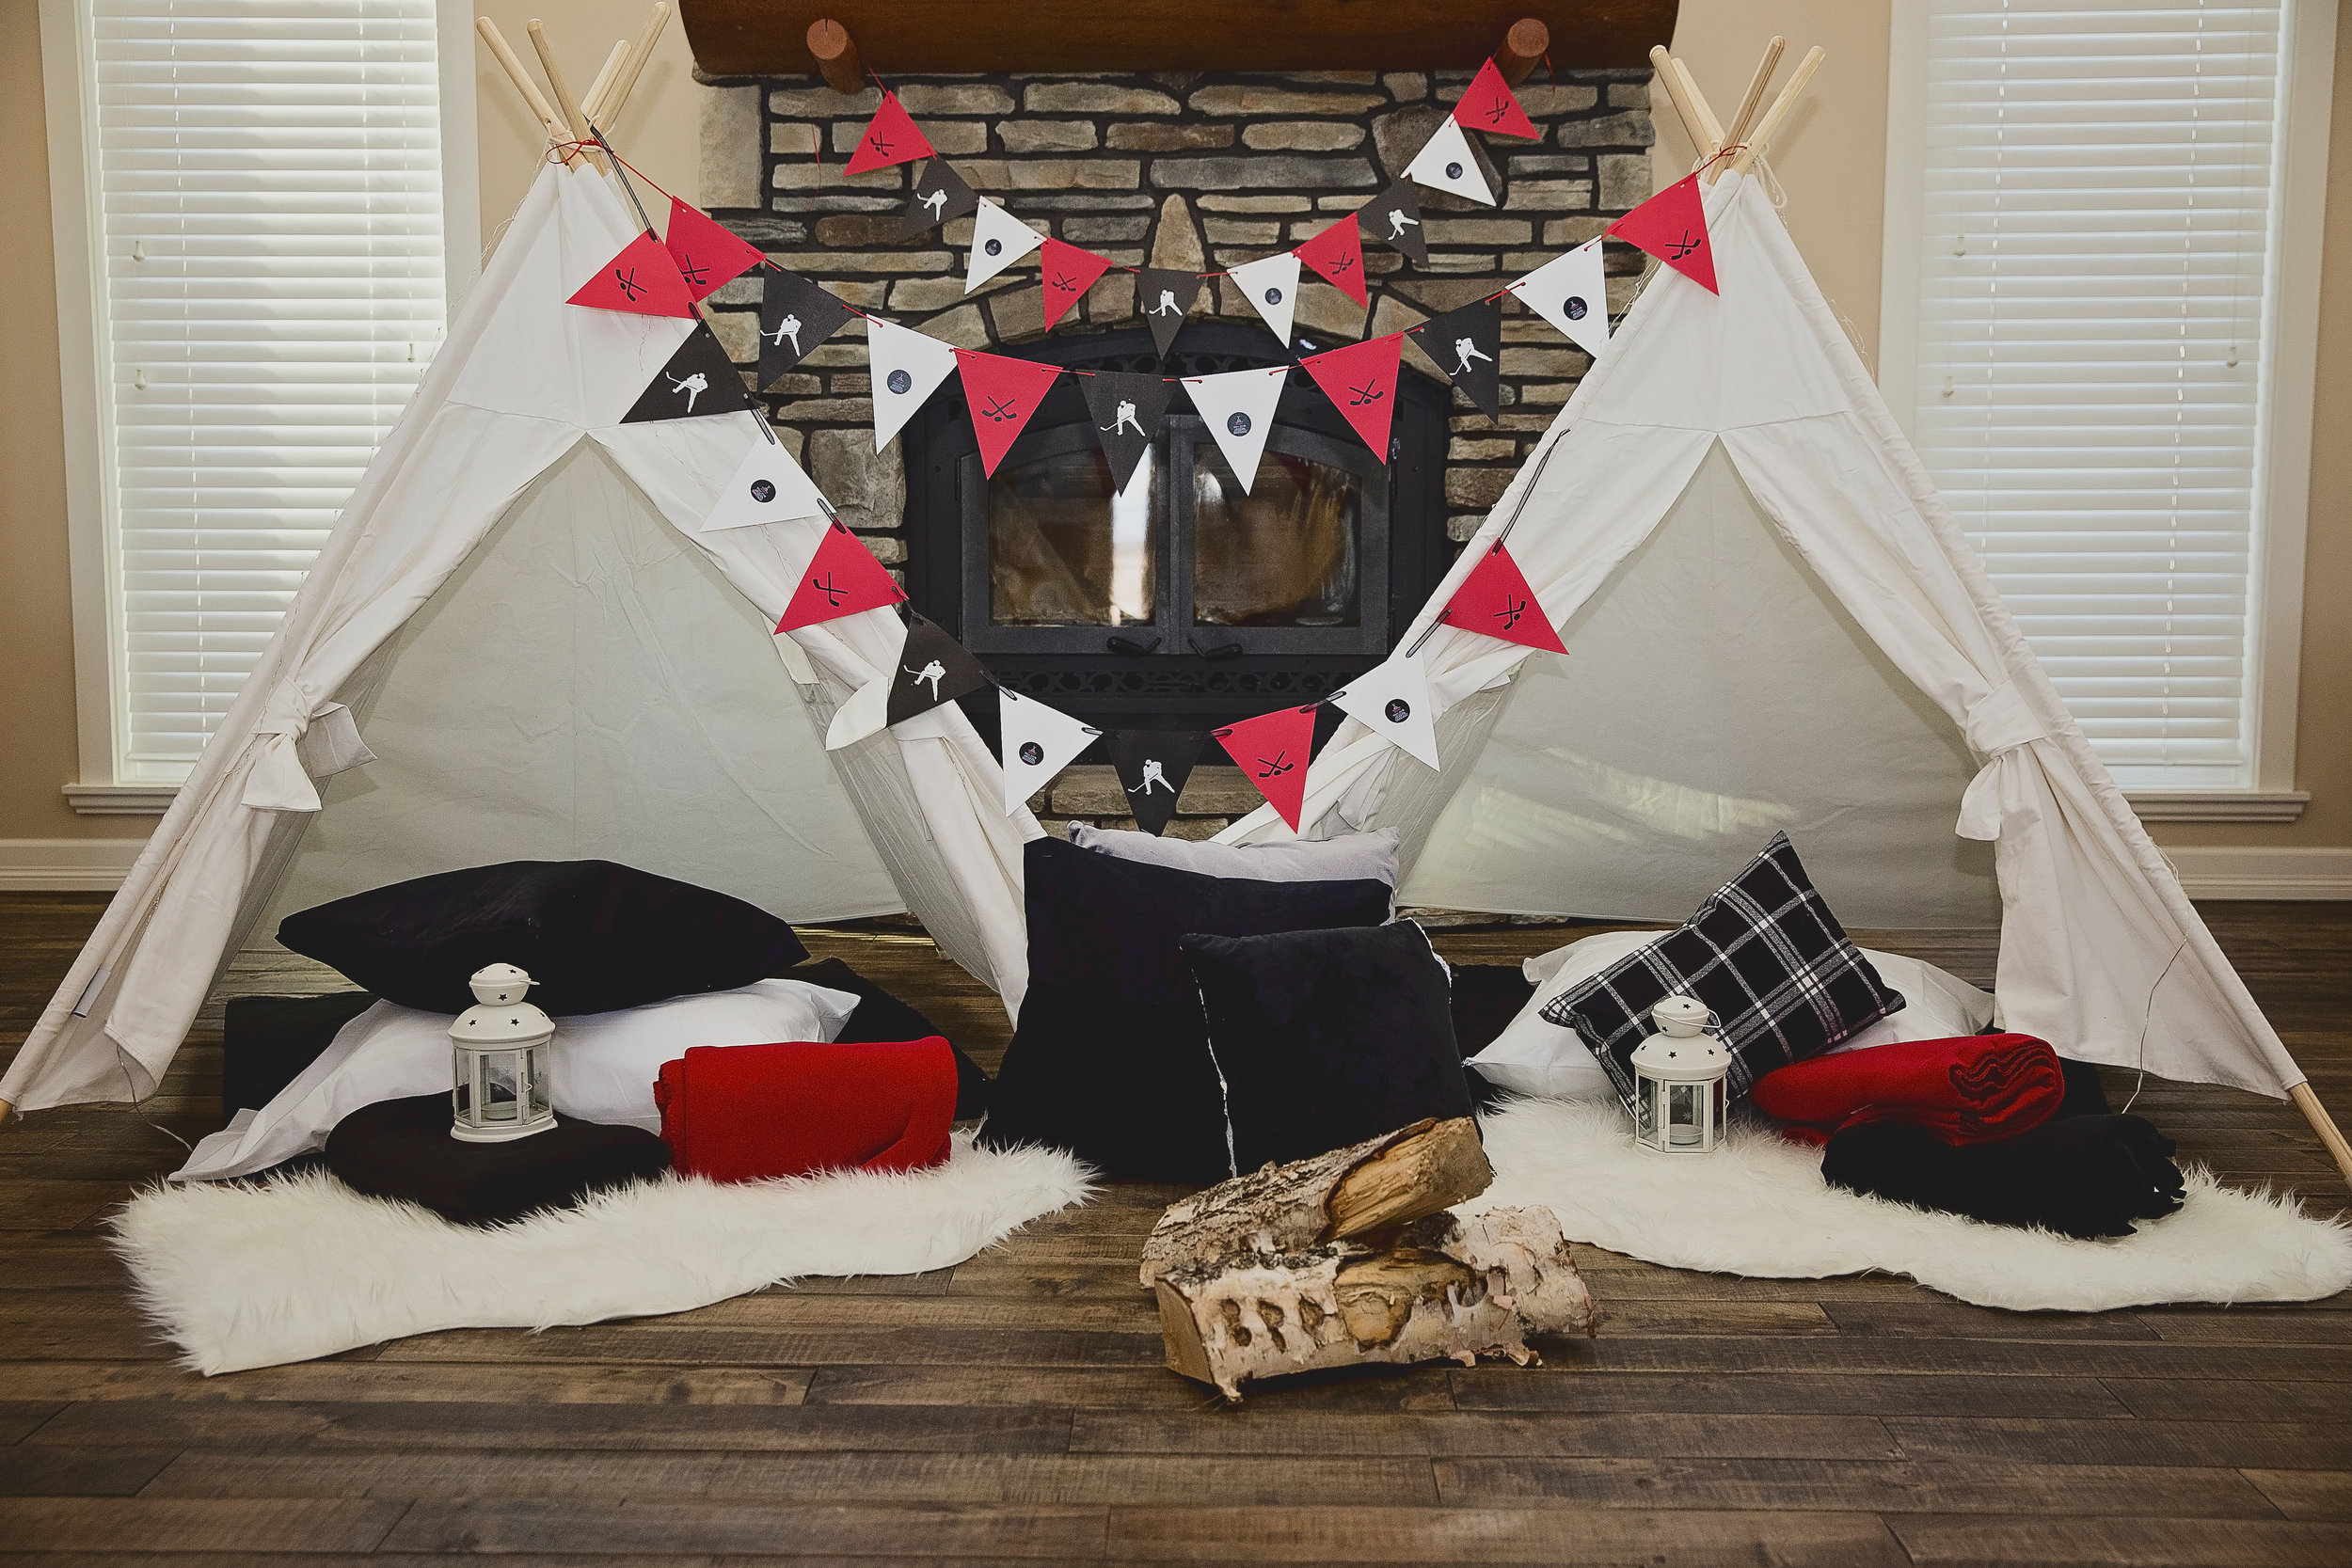 Oh Canada! - What could be more Canadian than hockey and flannel, eh? This theme is based on the country's love of hockey, warm nights camping in cozy flannel and having a great time with your friends. It is perfect for your hockey fan.